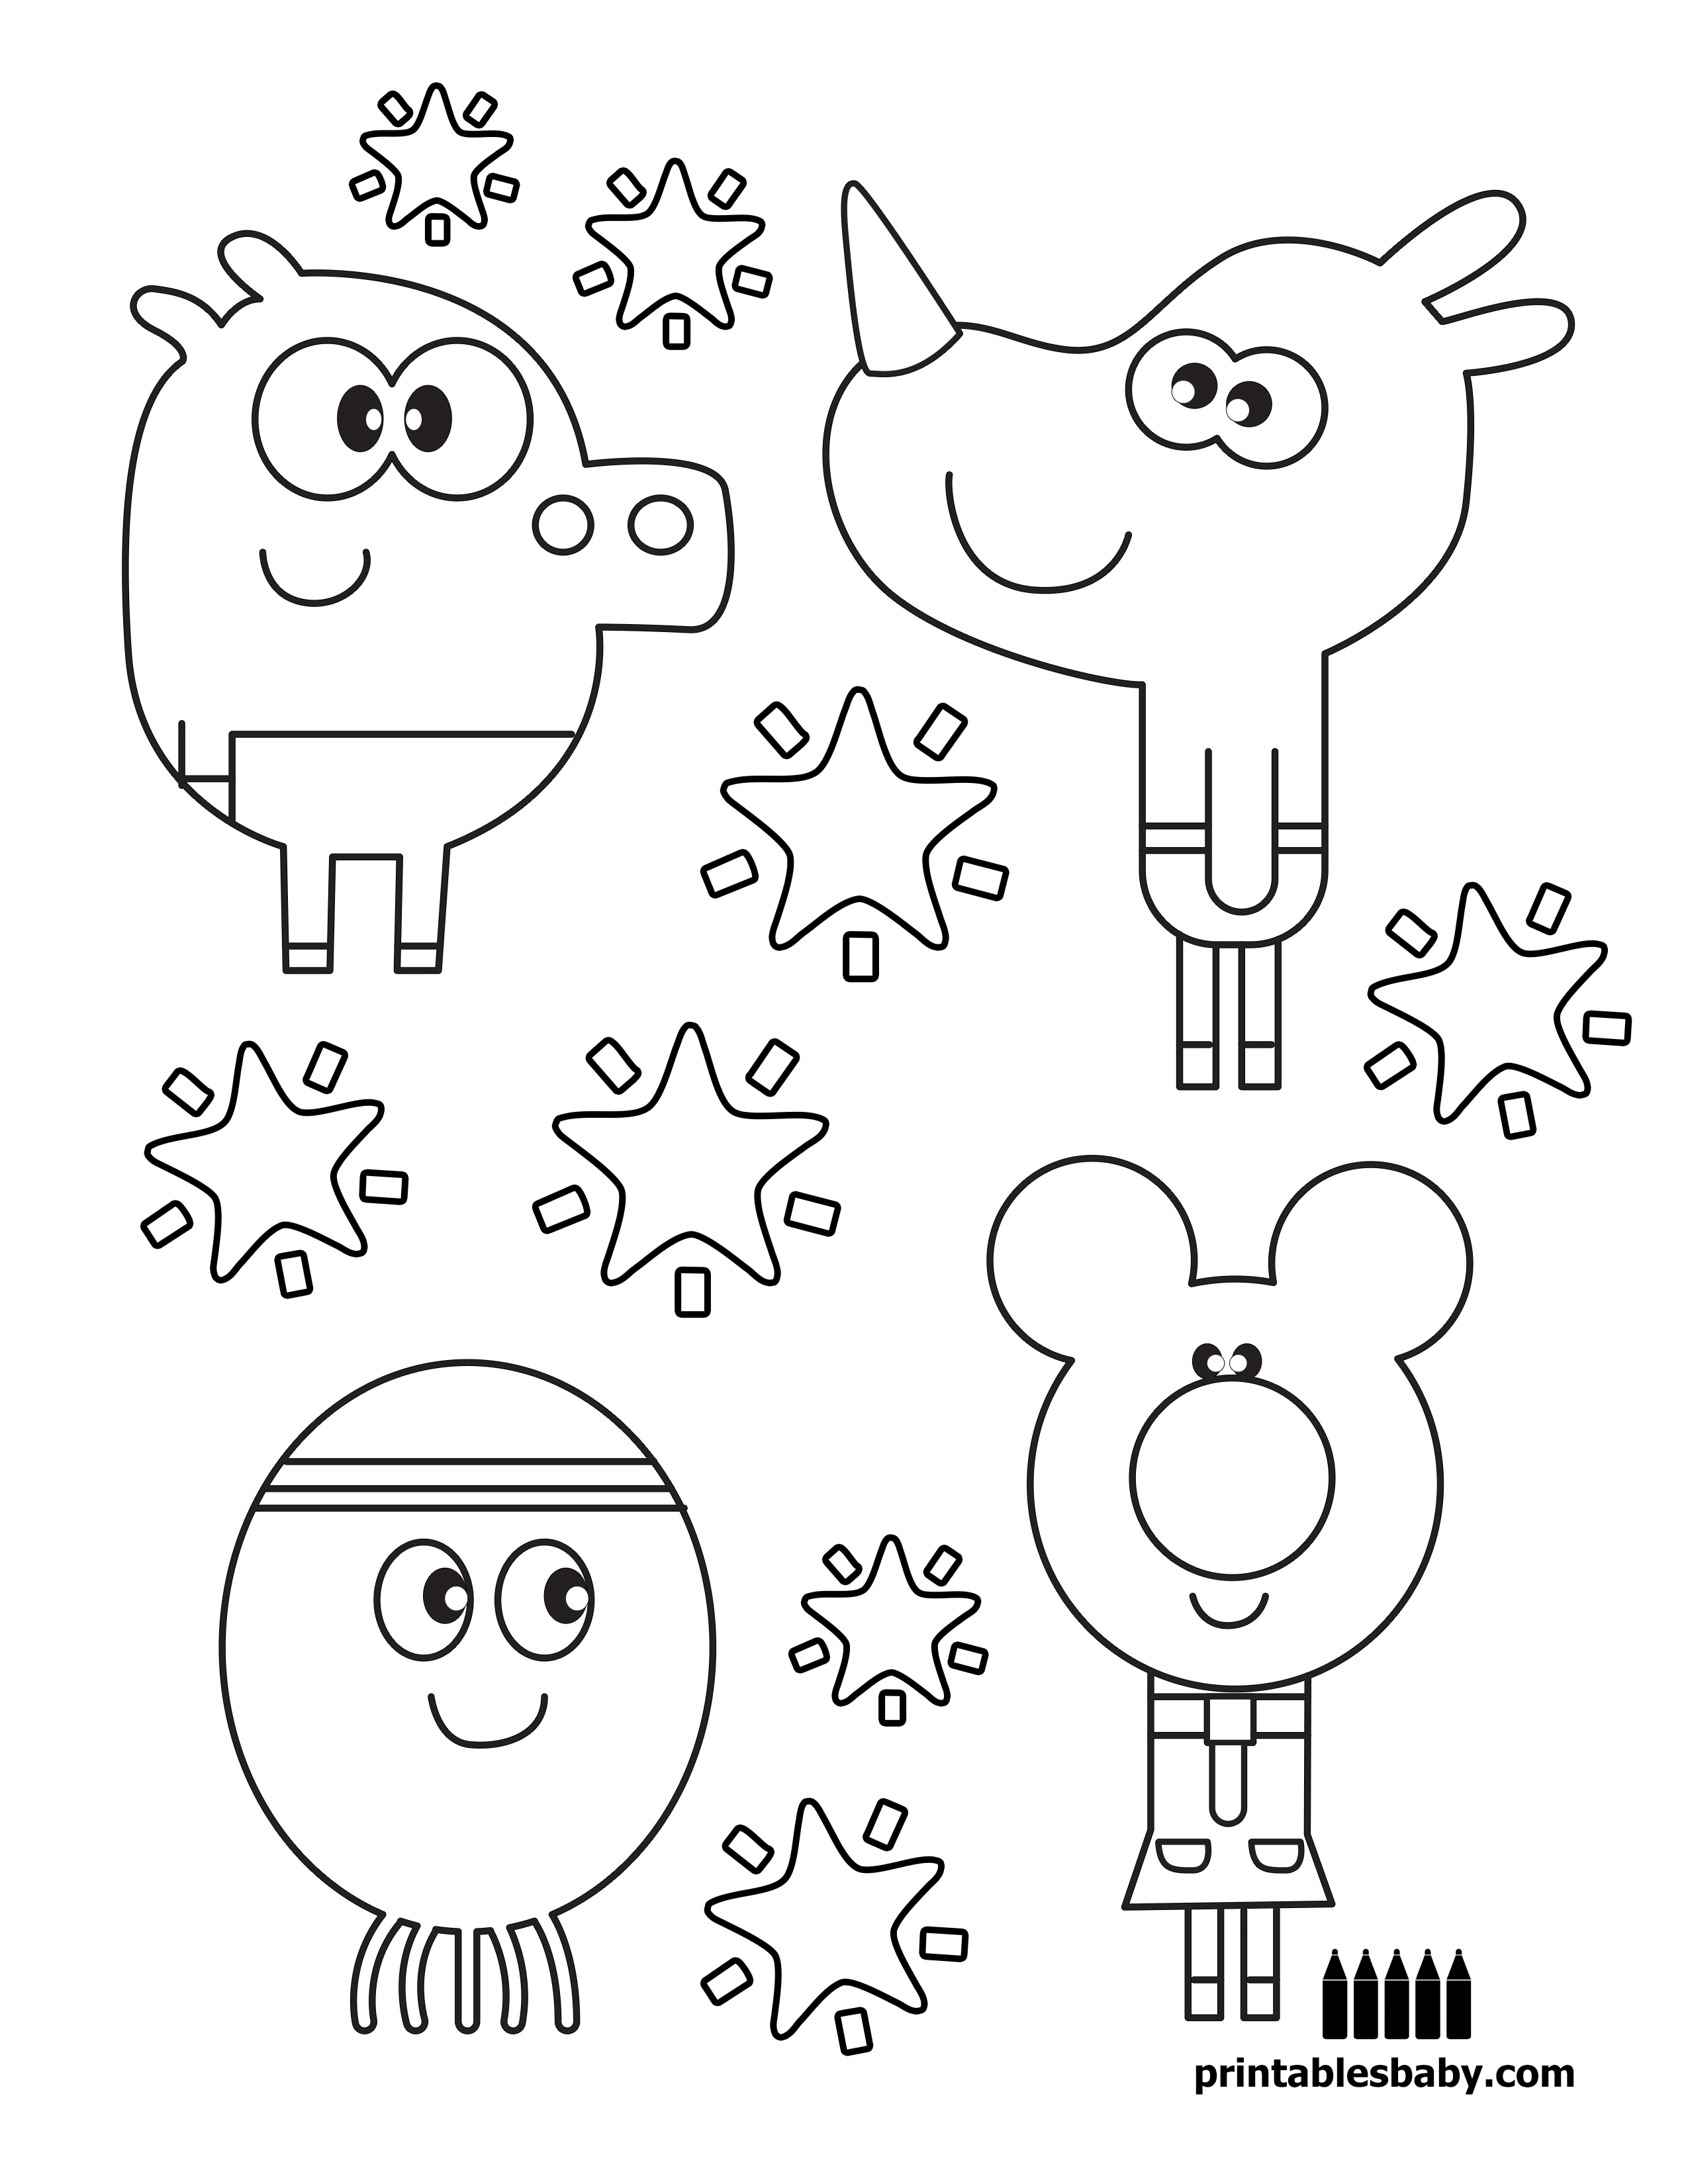 Hey Duggee | Printables Baby - Free Cartoon Coloring Pages